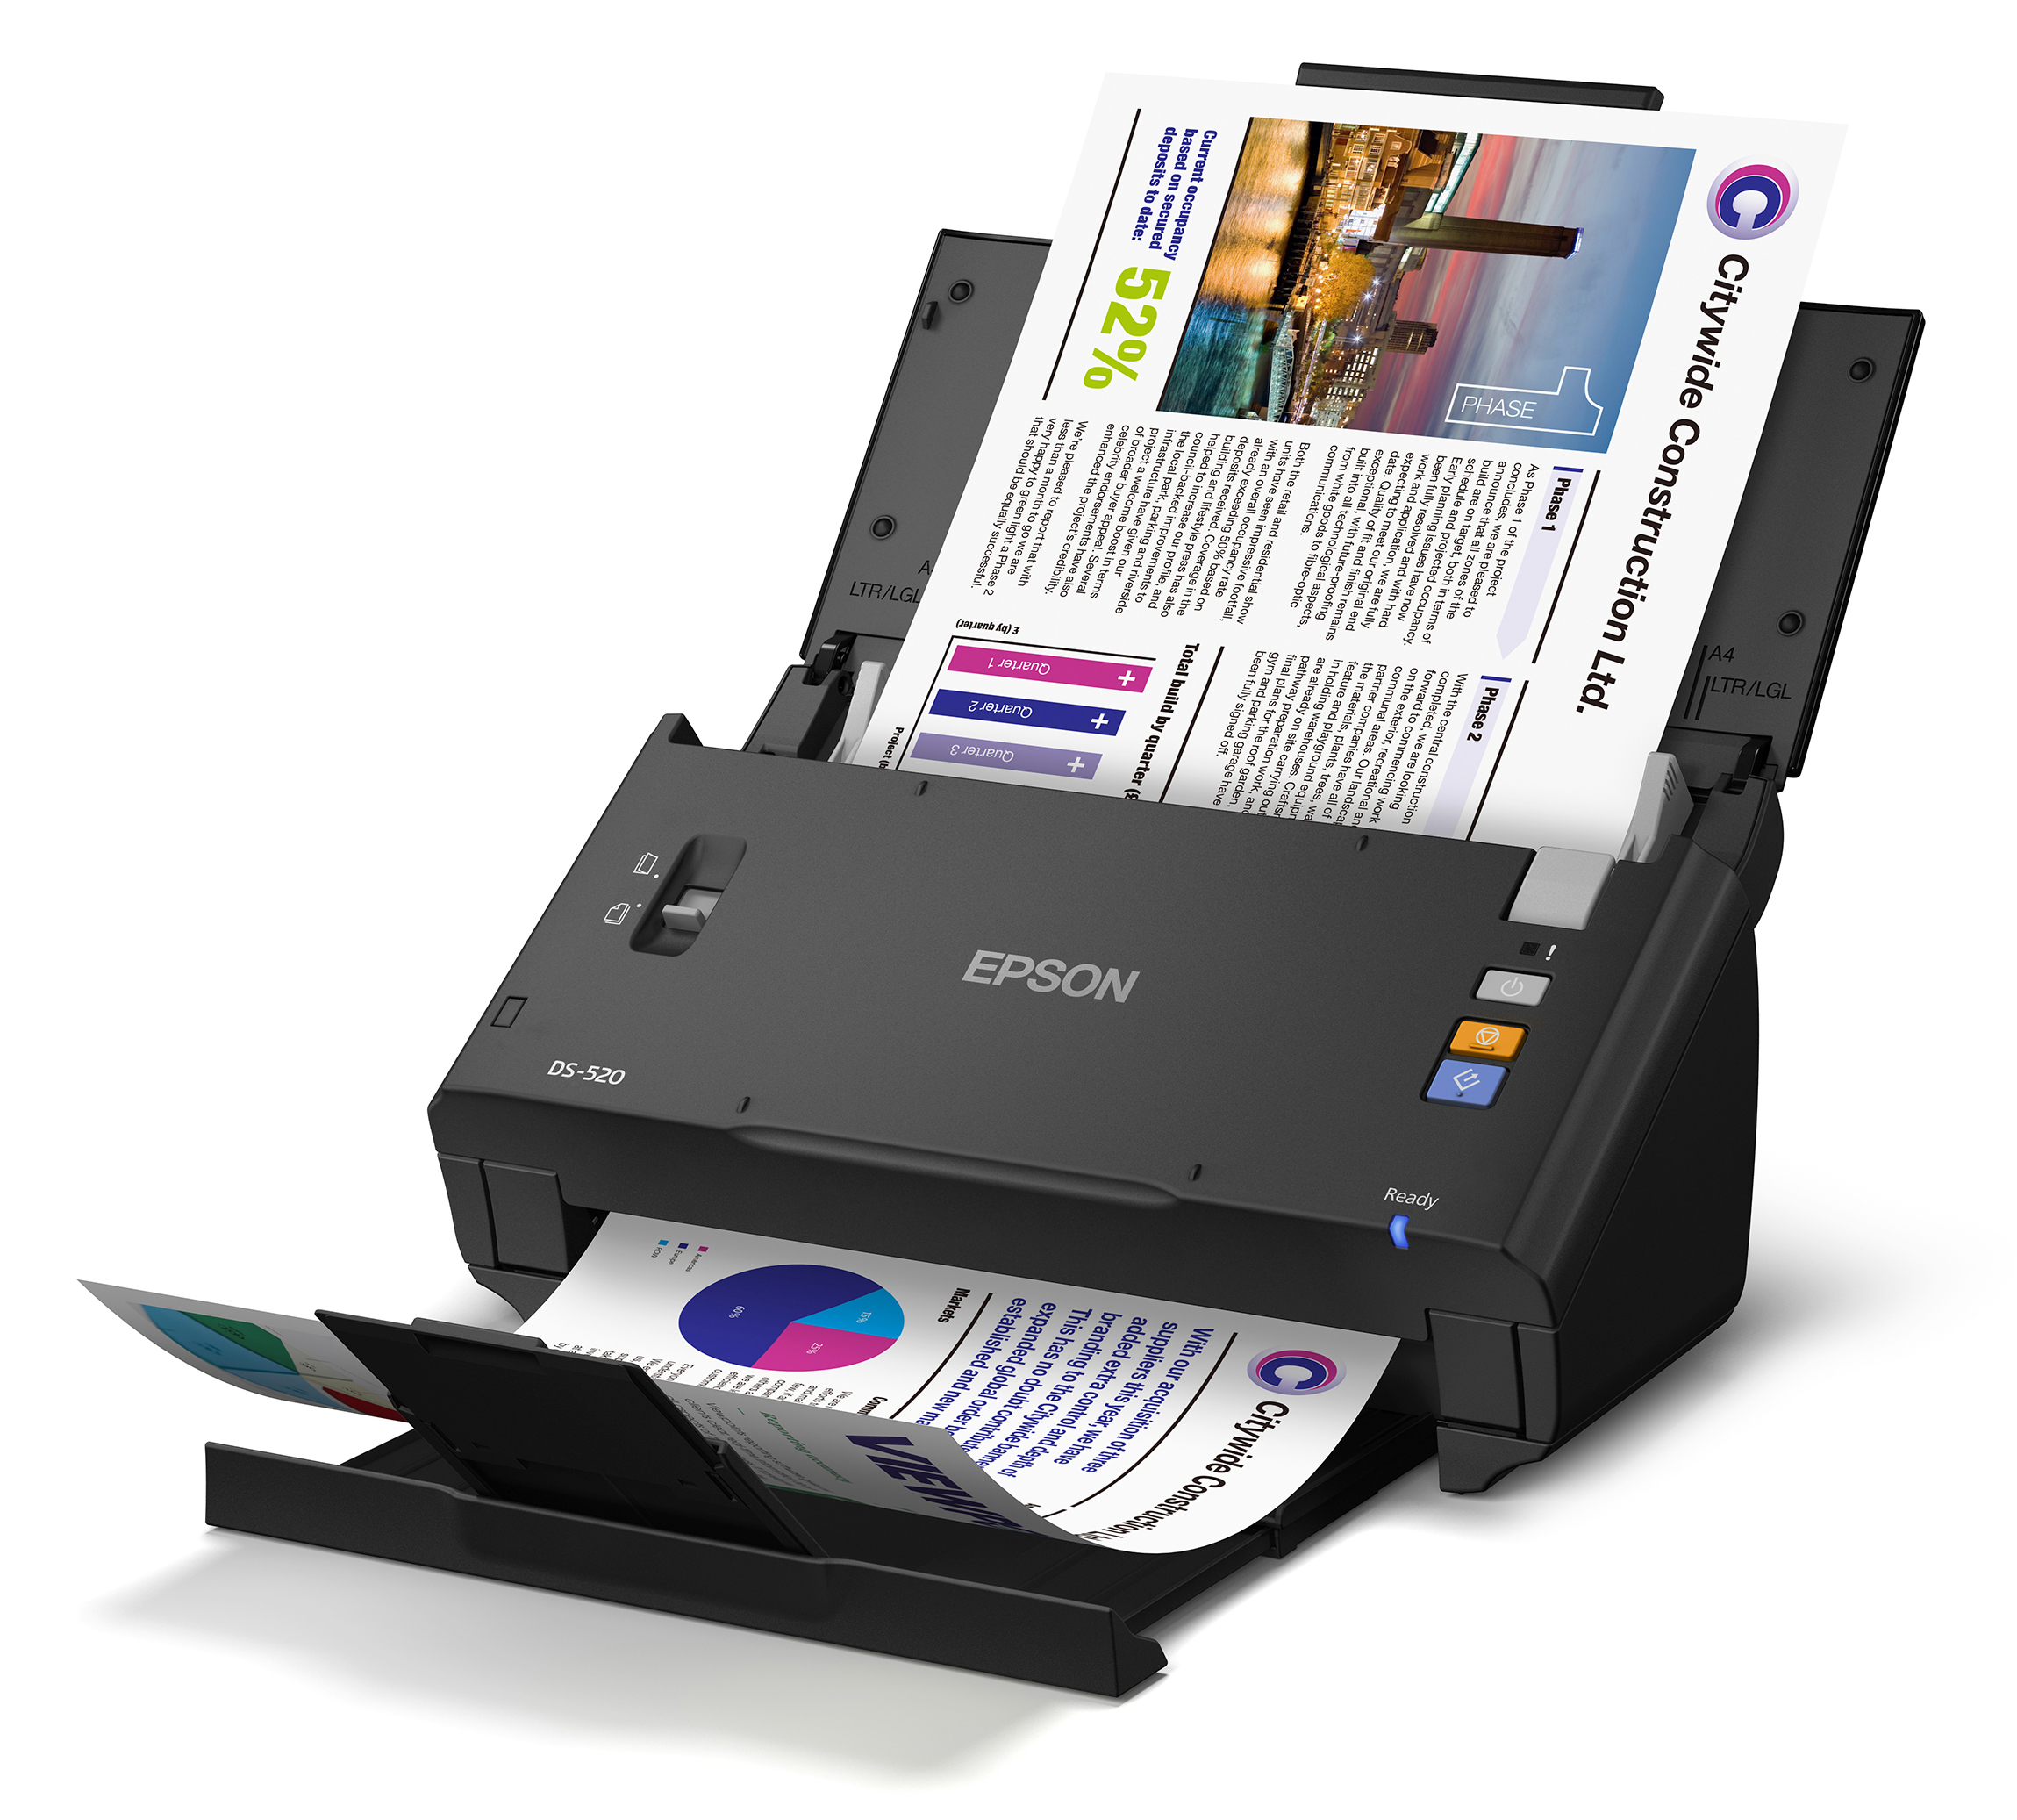 Epson Ds-520 Driver Free Download